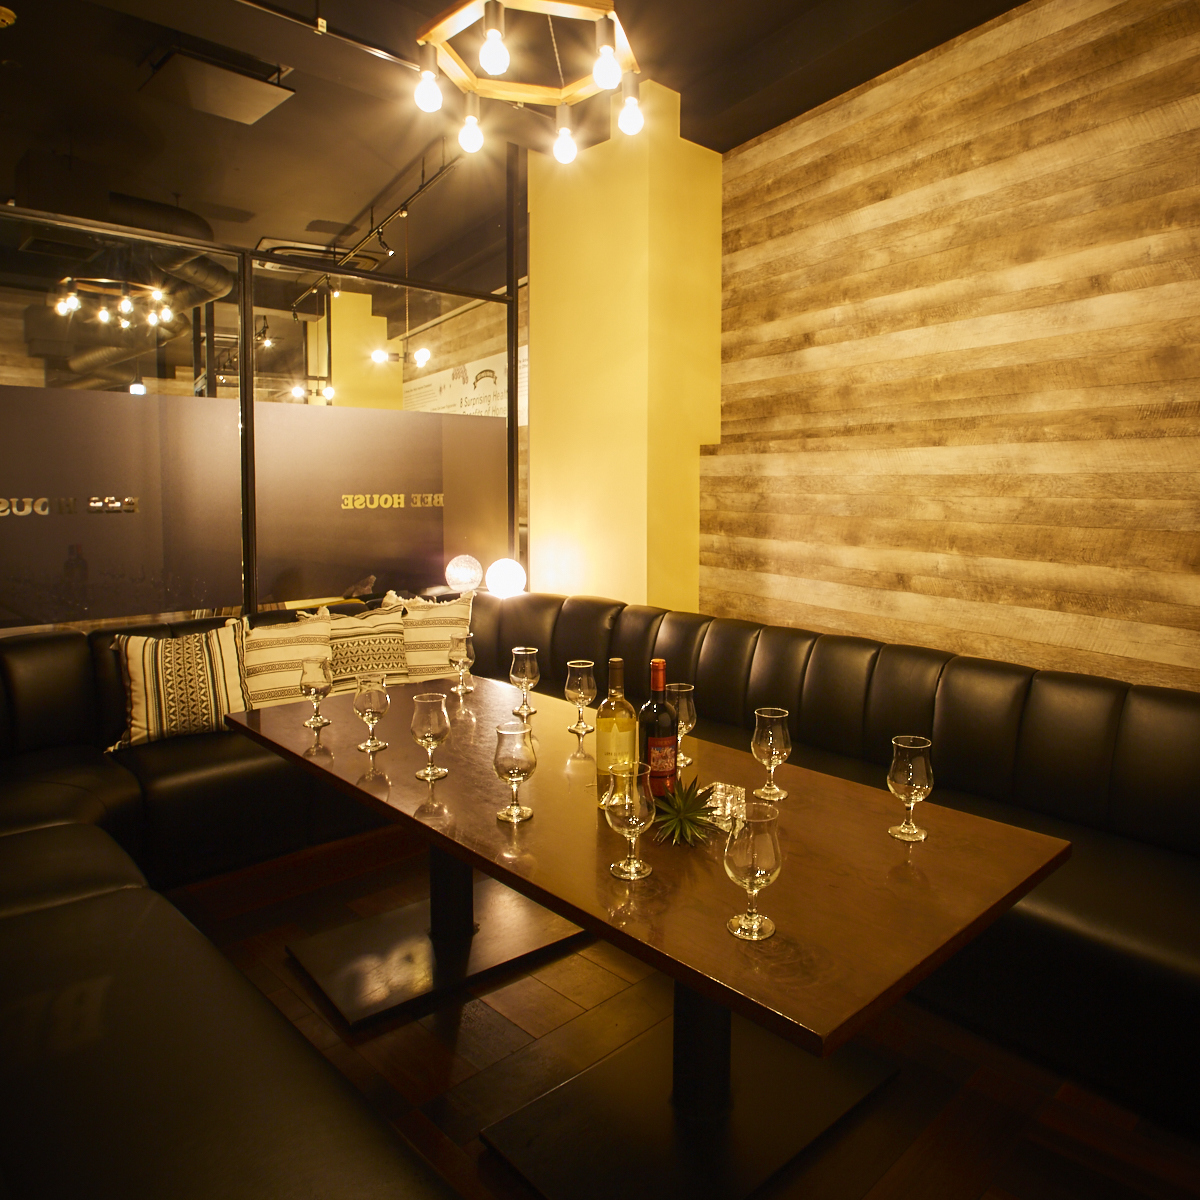 VIP seats on full sofas ♪ Reservation is essential for a limited seating!